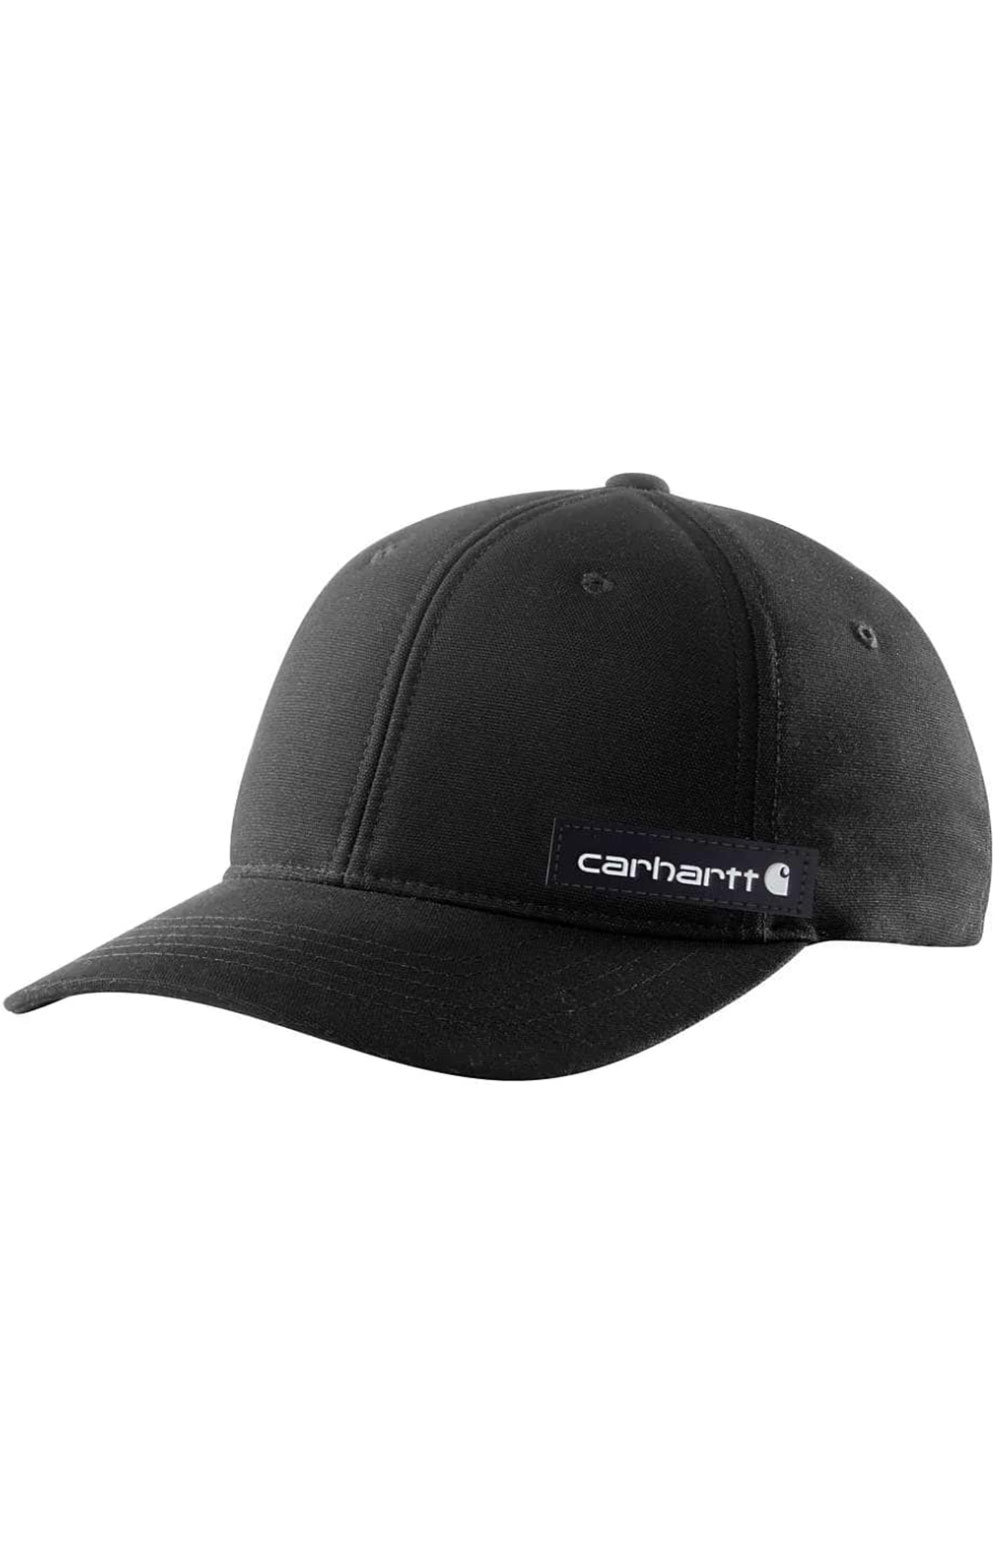 (104298) Rugged Flex Canvas Full-Back Fitted Logo Graphic Cap - Black